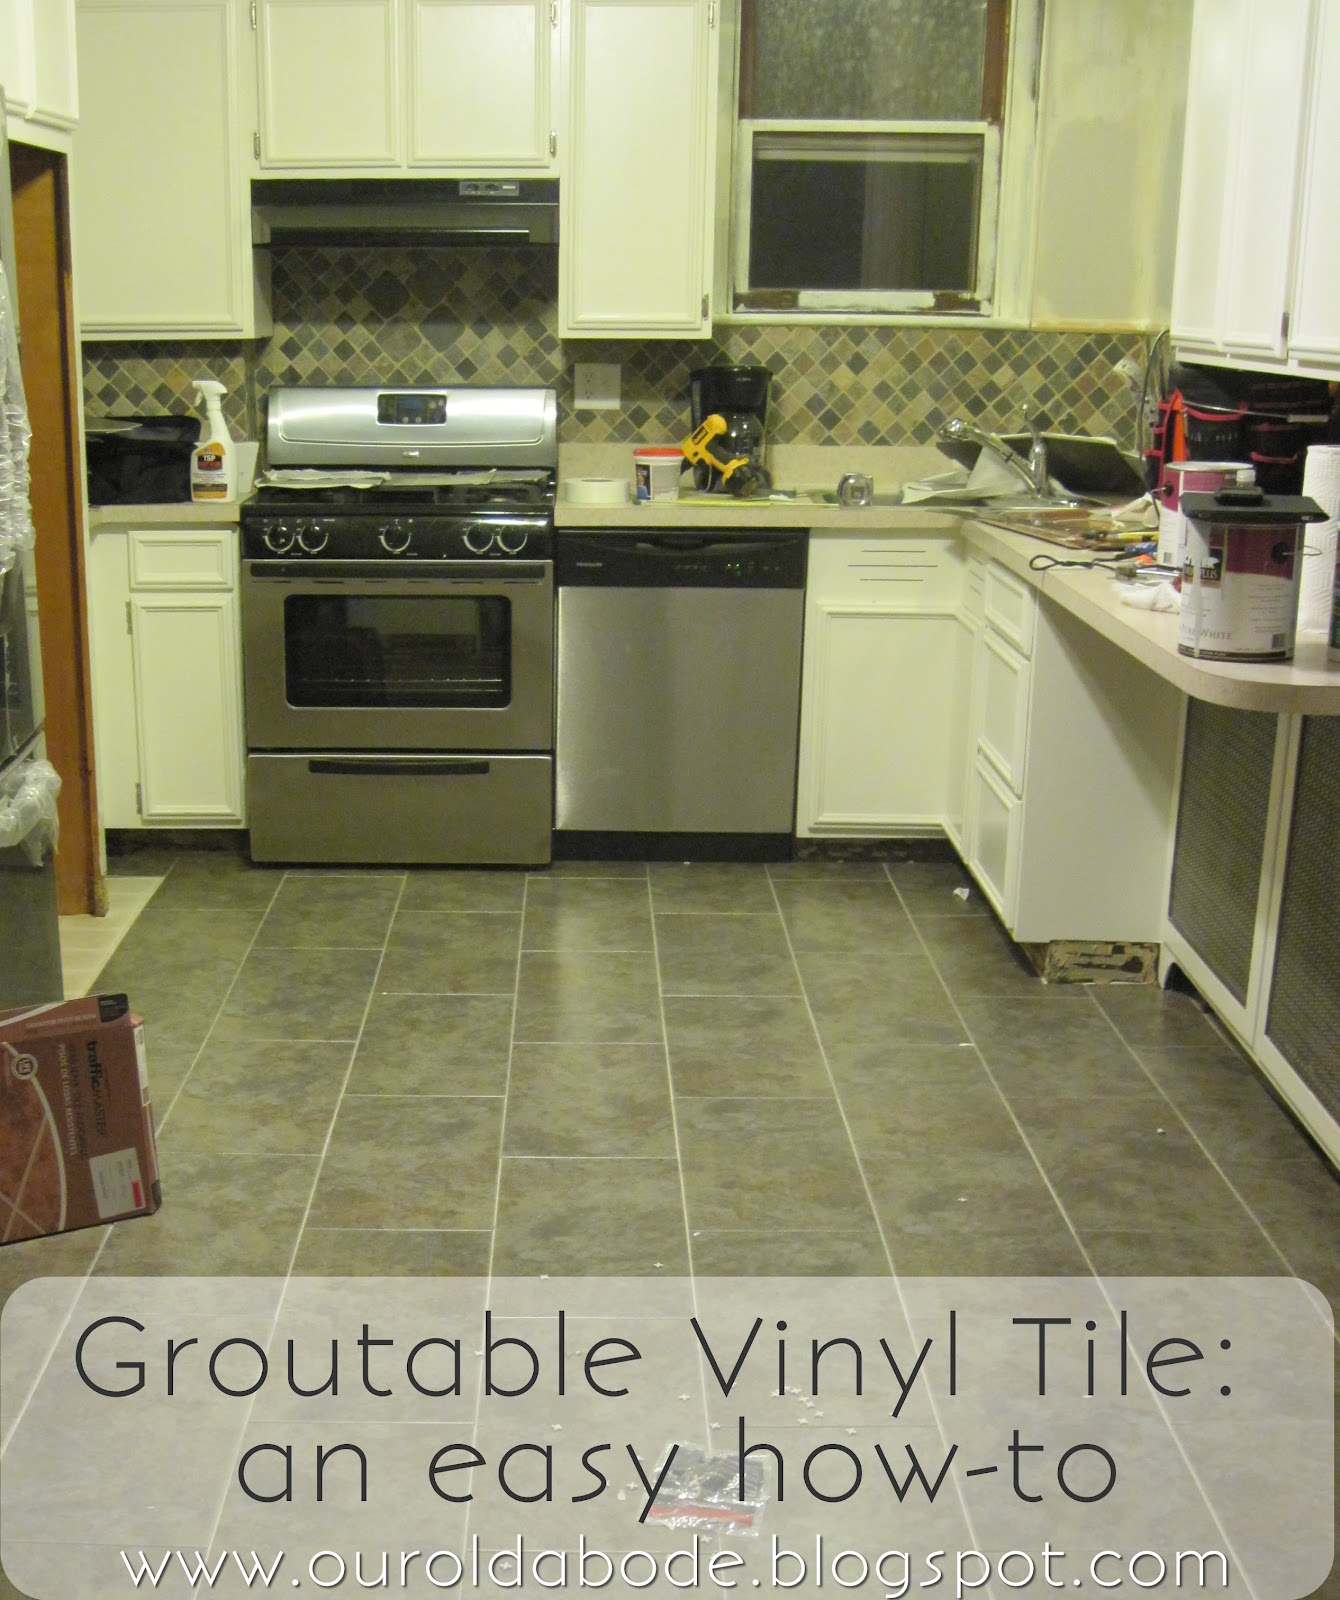 Vinyl Kitchen Floor Tiles Our Old Abode Kitchen Floor Groutable Vinyl Tile